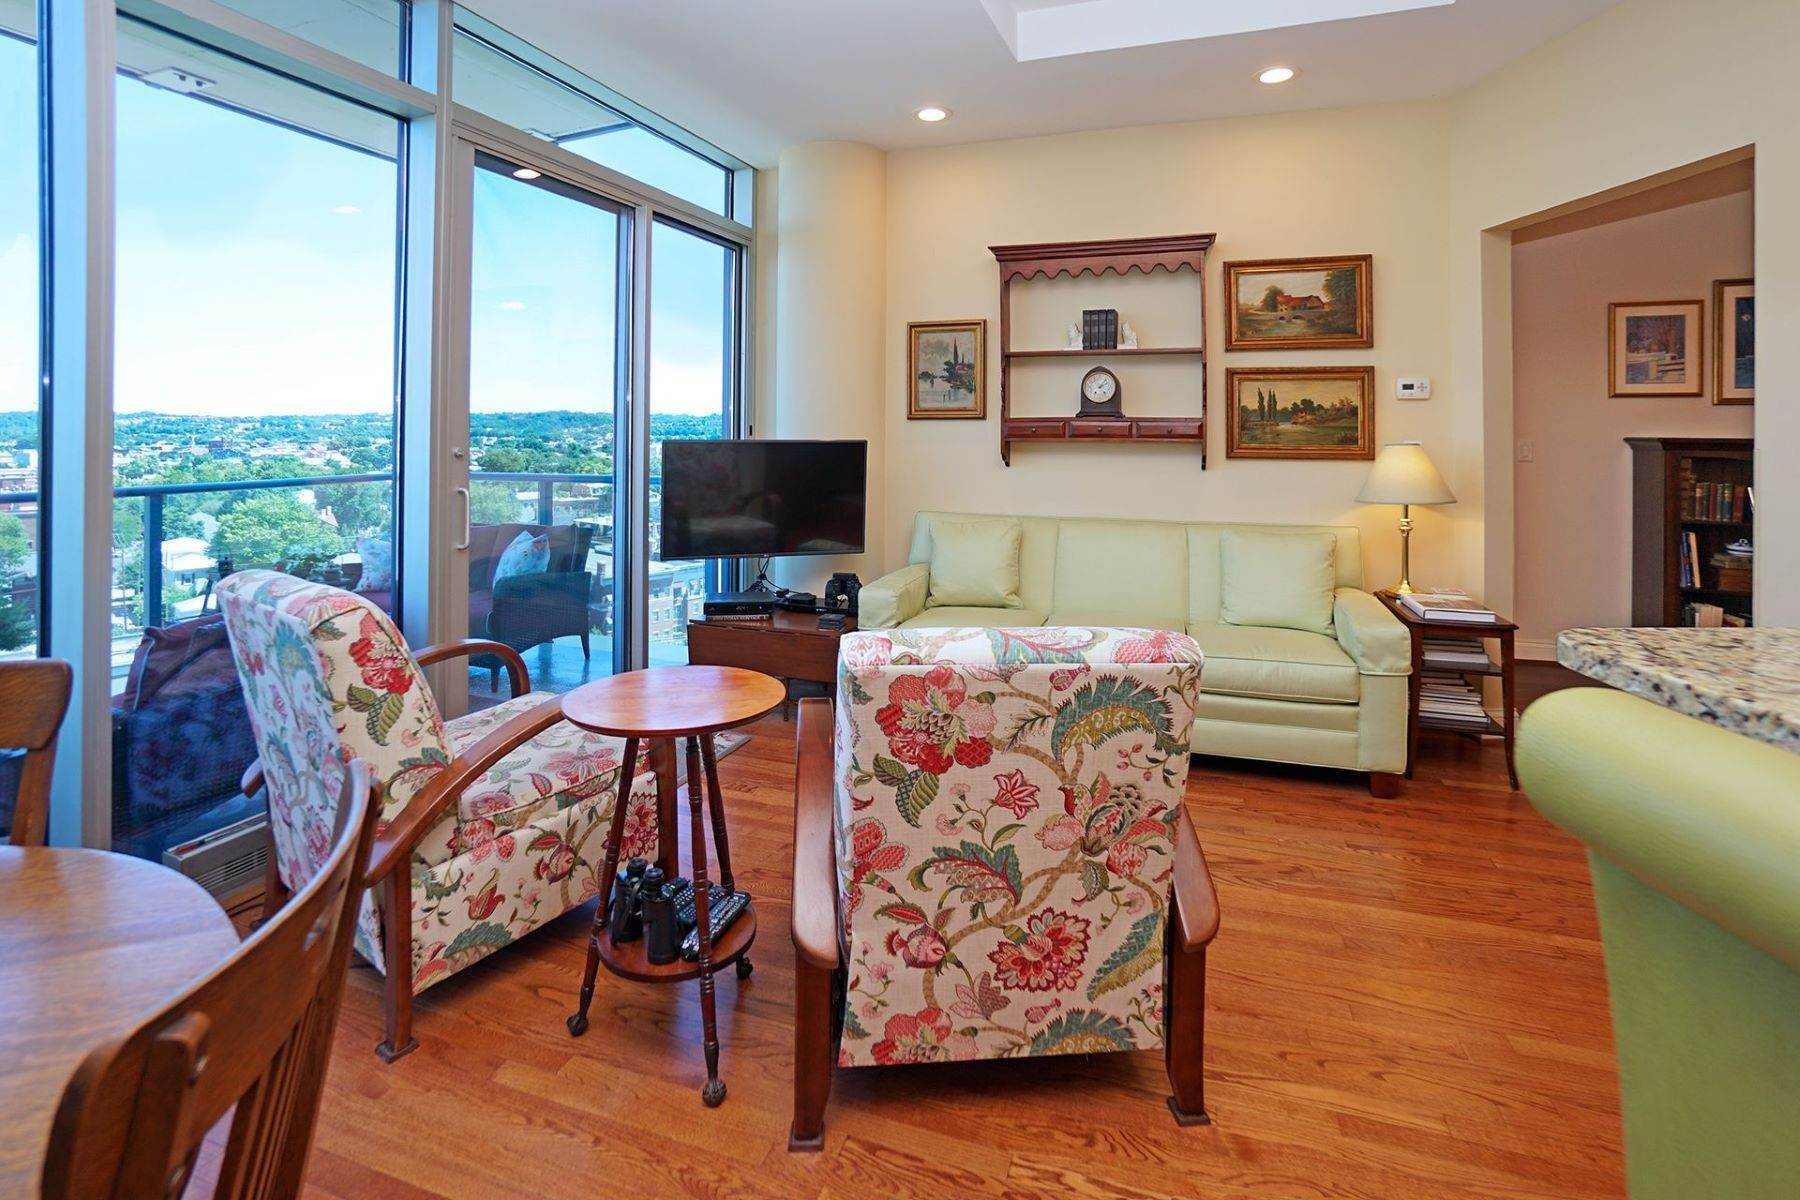 3. Condominiums for Sale at 1 Roebling Way #1105, Covington, KY 41011 1 Roebling Way #1105 Covington, Kentucky 41011 United States